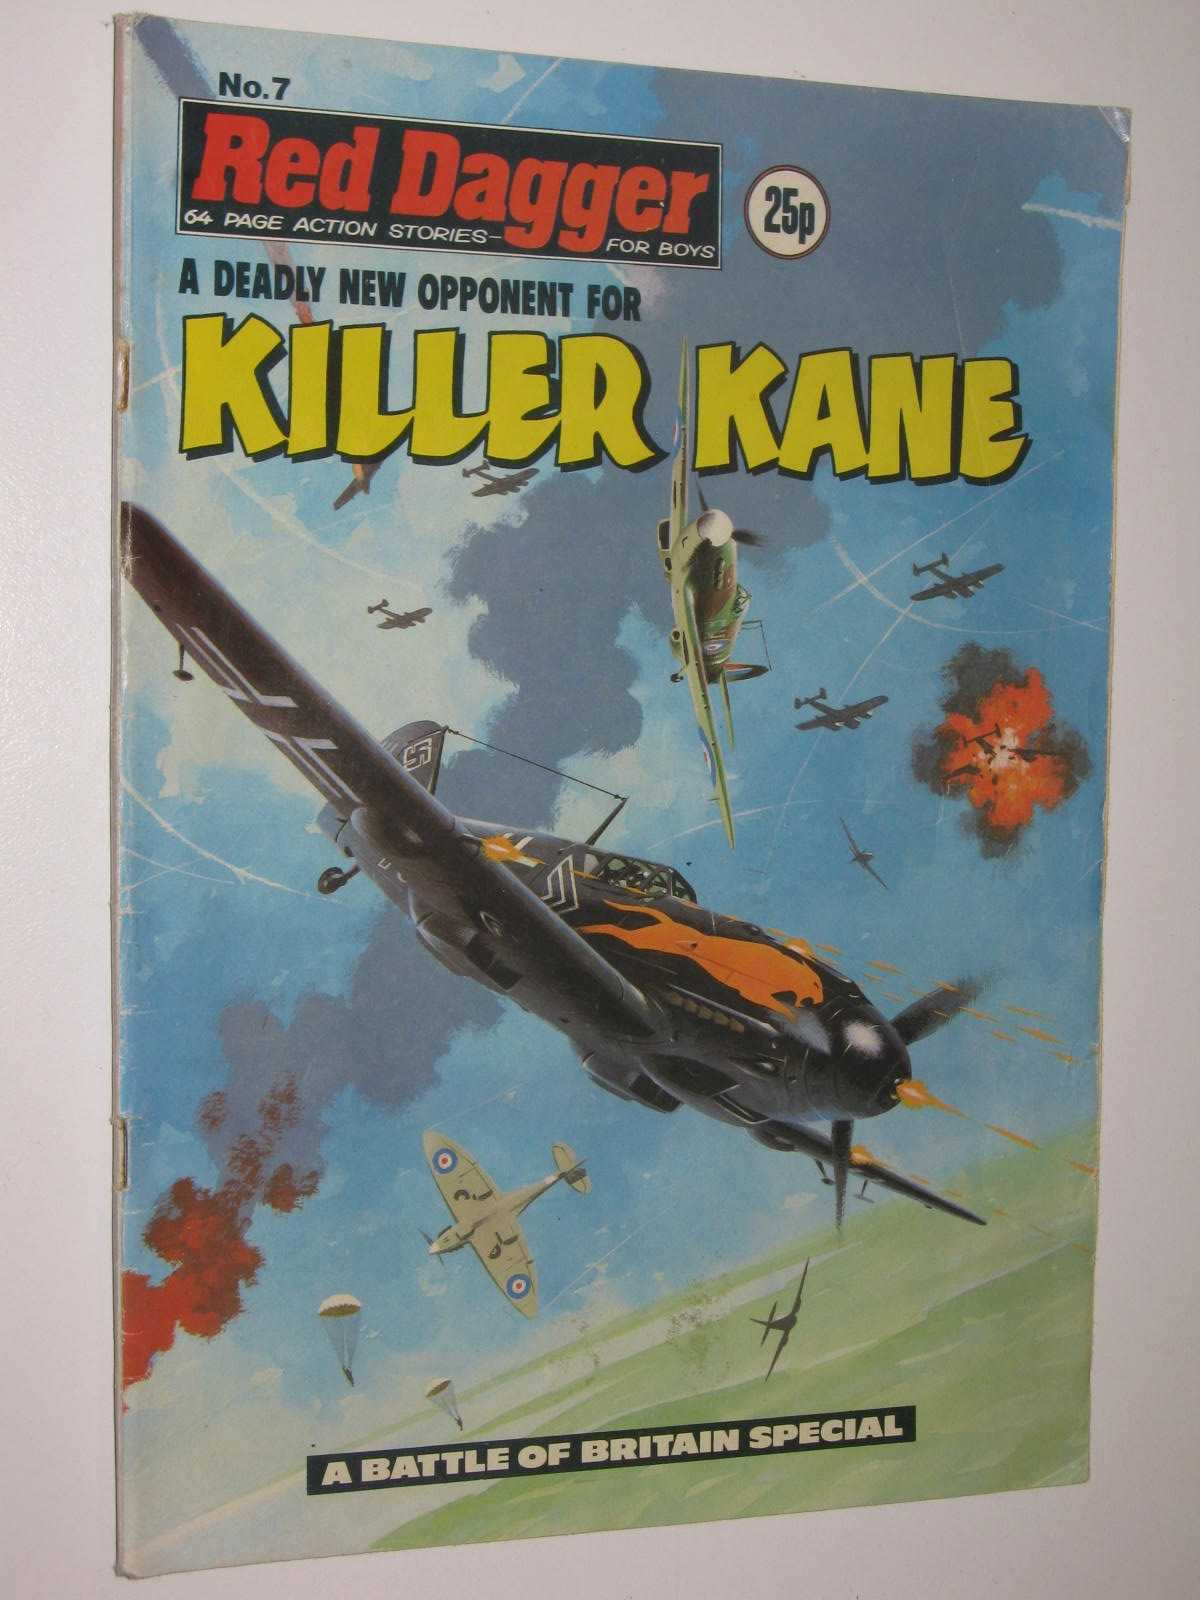 Image for Red Dagger No. 7: Killer Kane : 64 Page Action Stories for Boys